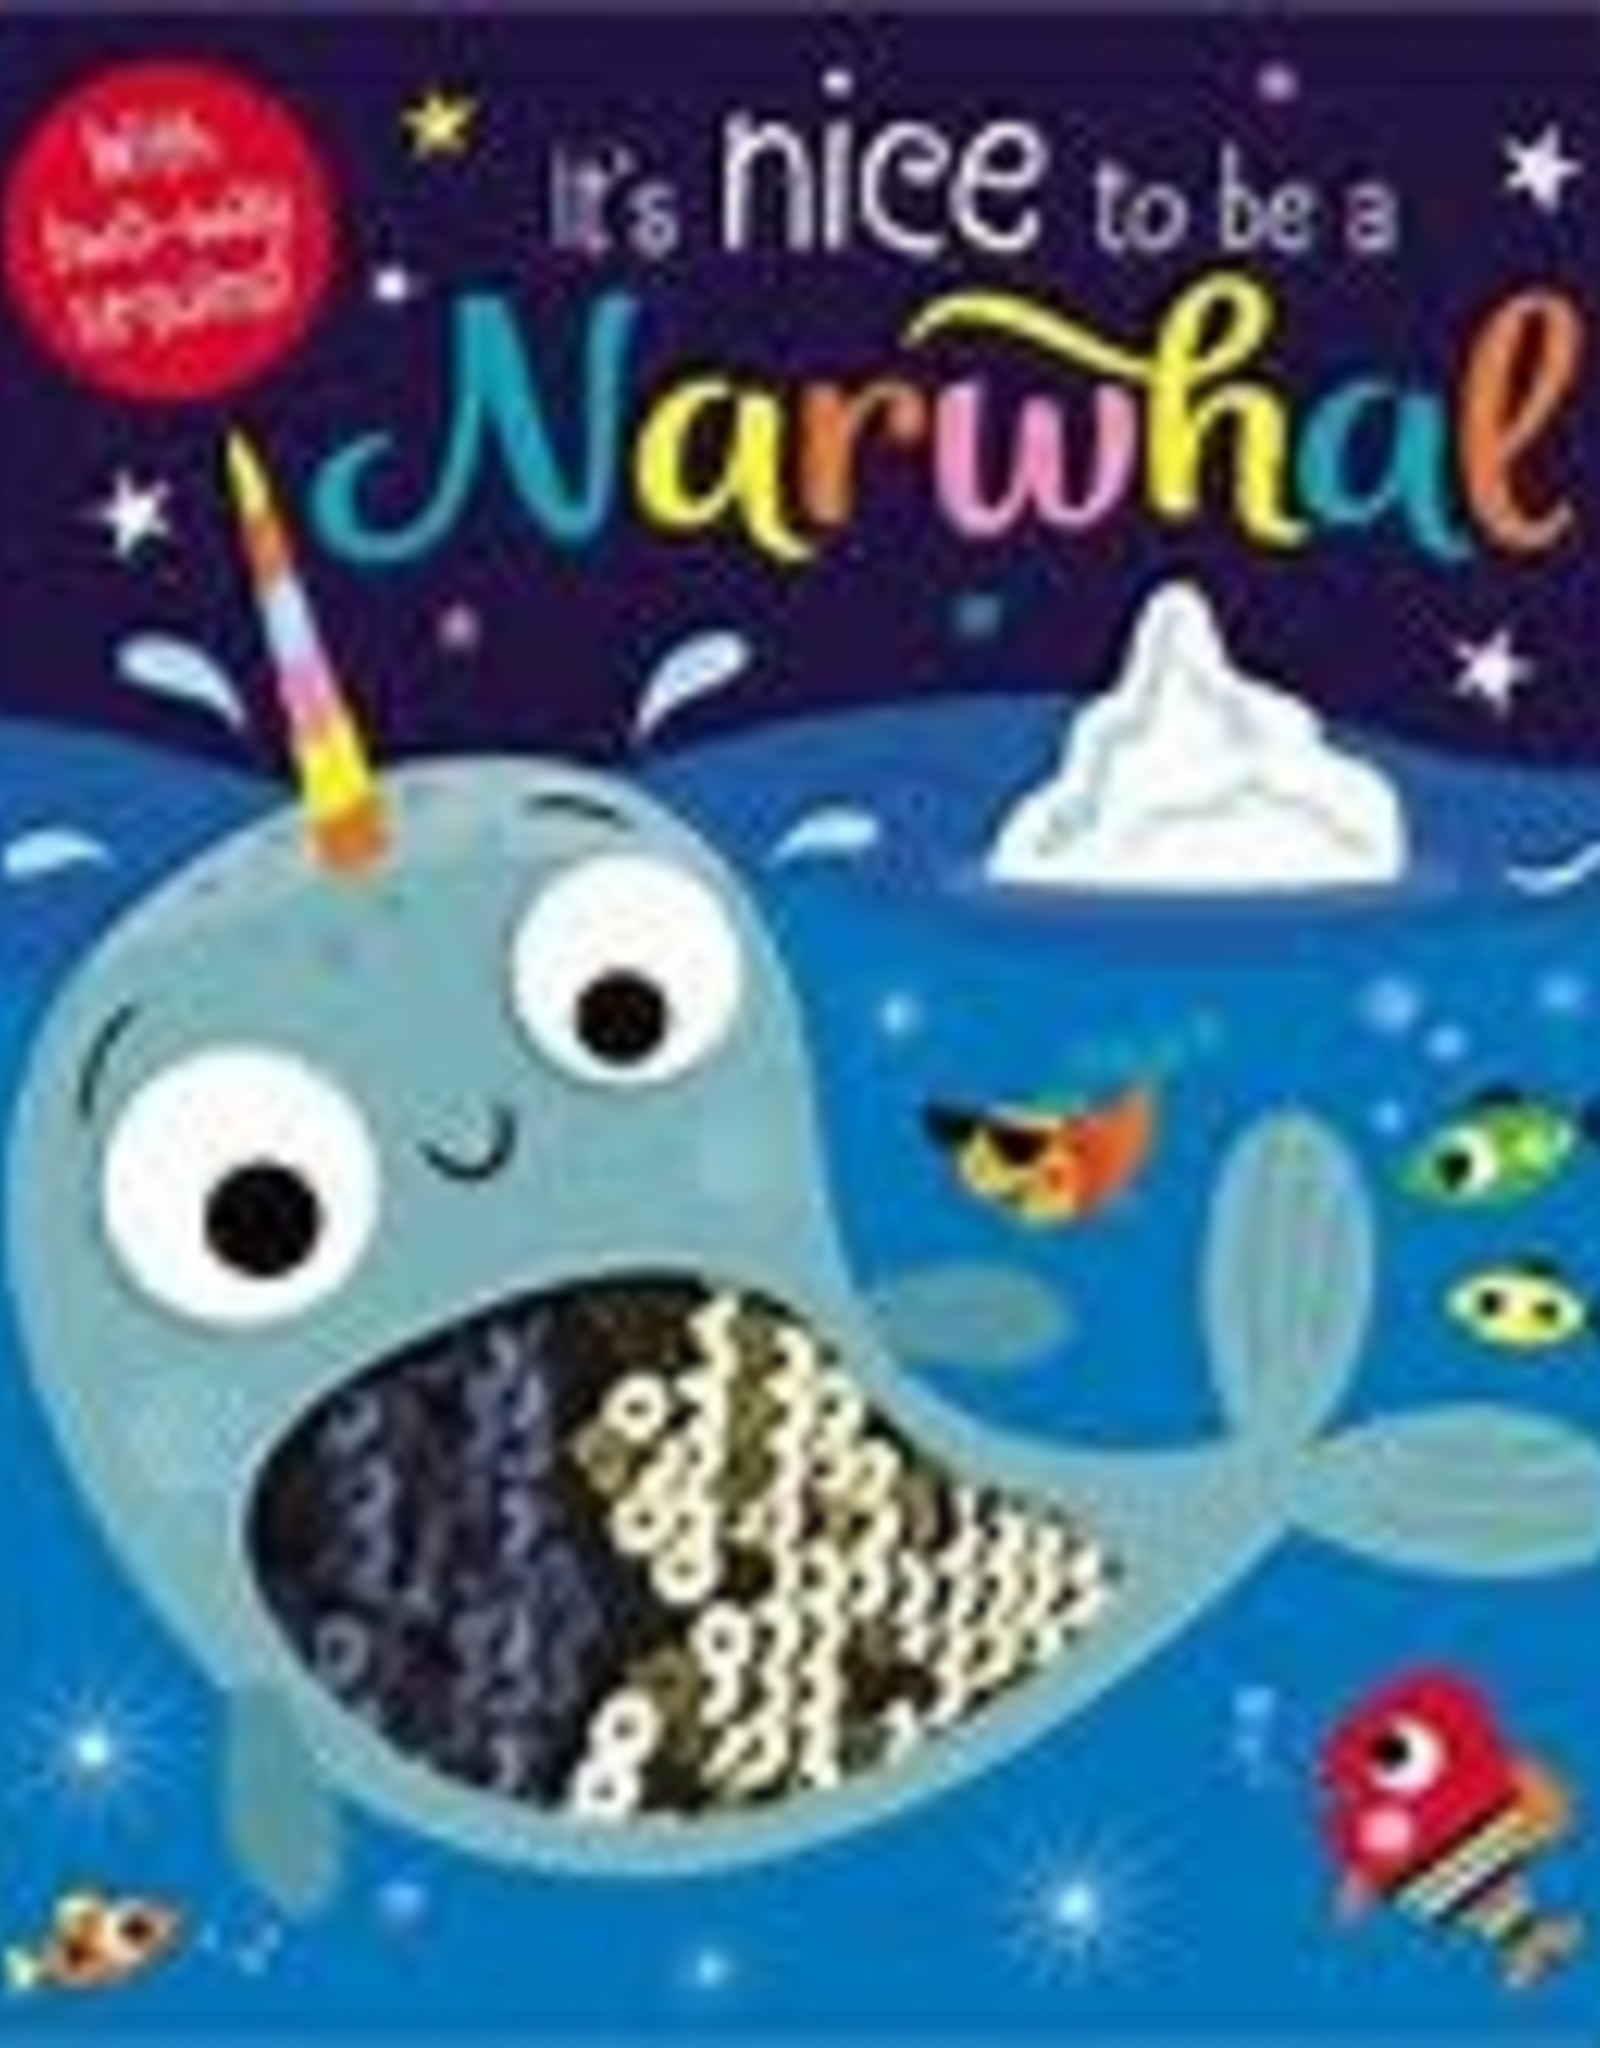 Its Nice to be a Narwhal